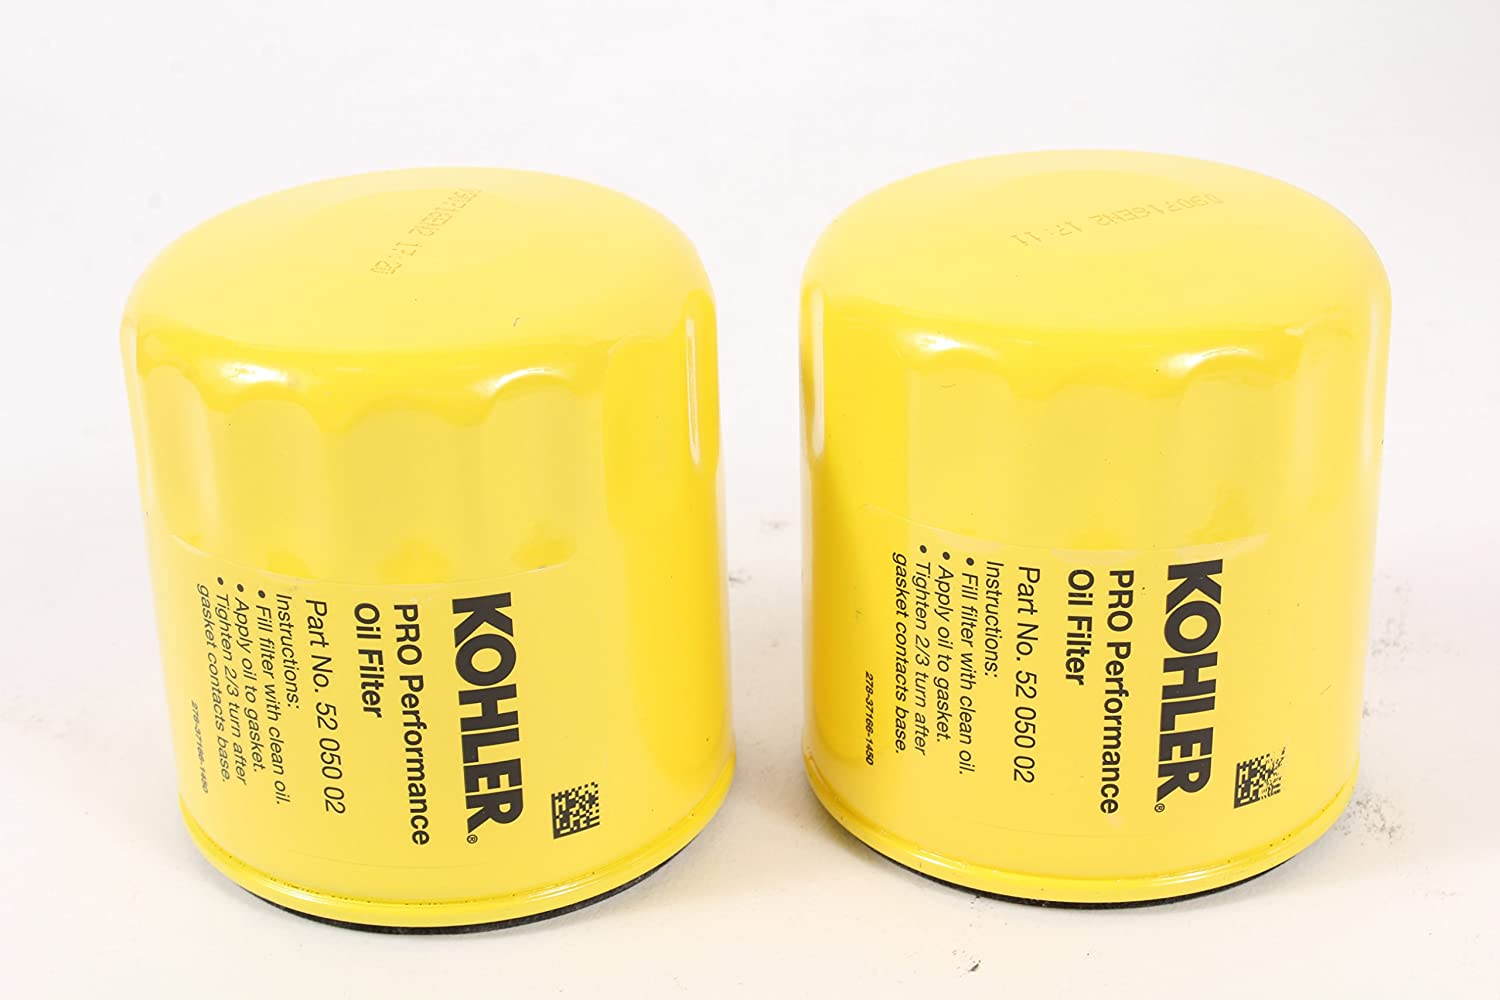 Kohler 52 050 02 S Engine Oil Filter Extra Capacity For 1450 Cub Cadet Schematic Ch11 Ch15 Cv11 Cv22 M18 M20 Mv16 Mv20 And K582 Lawn Mower Filters